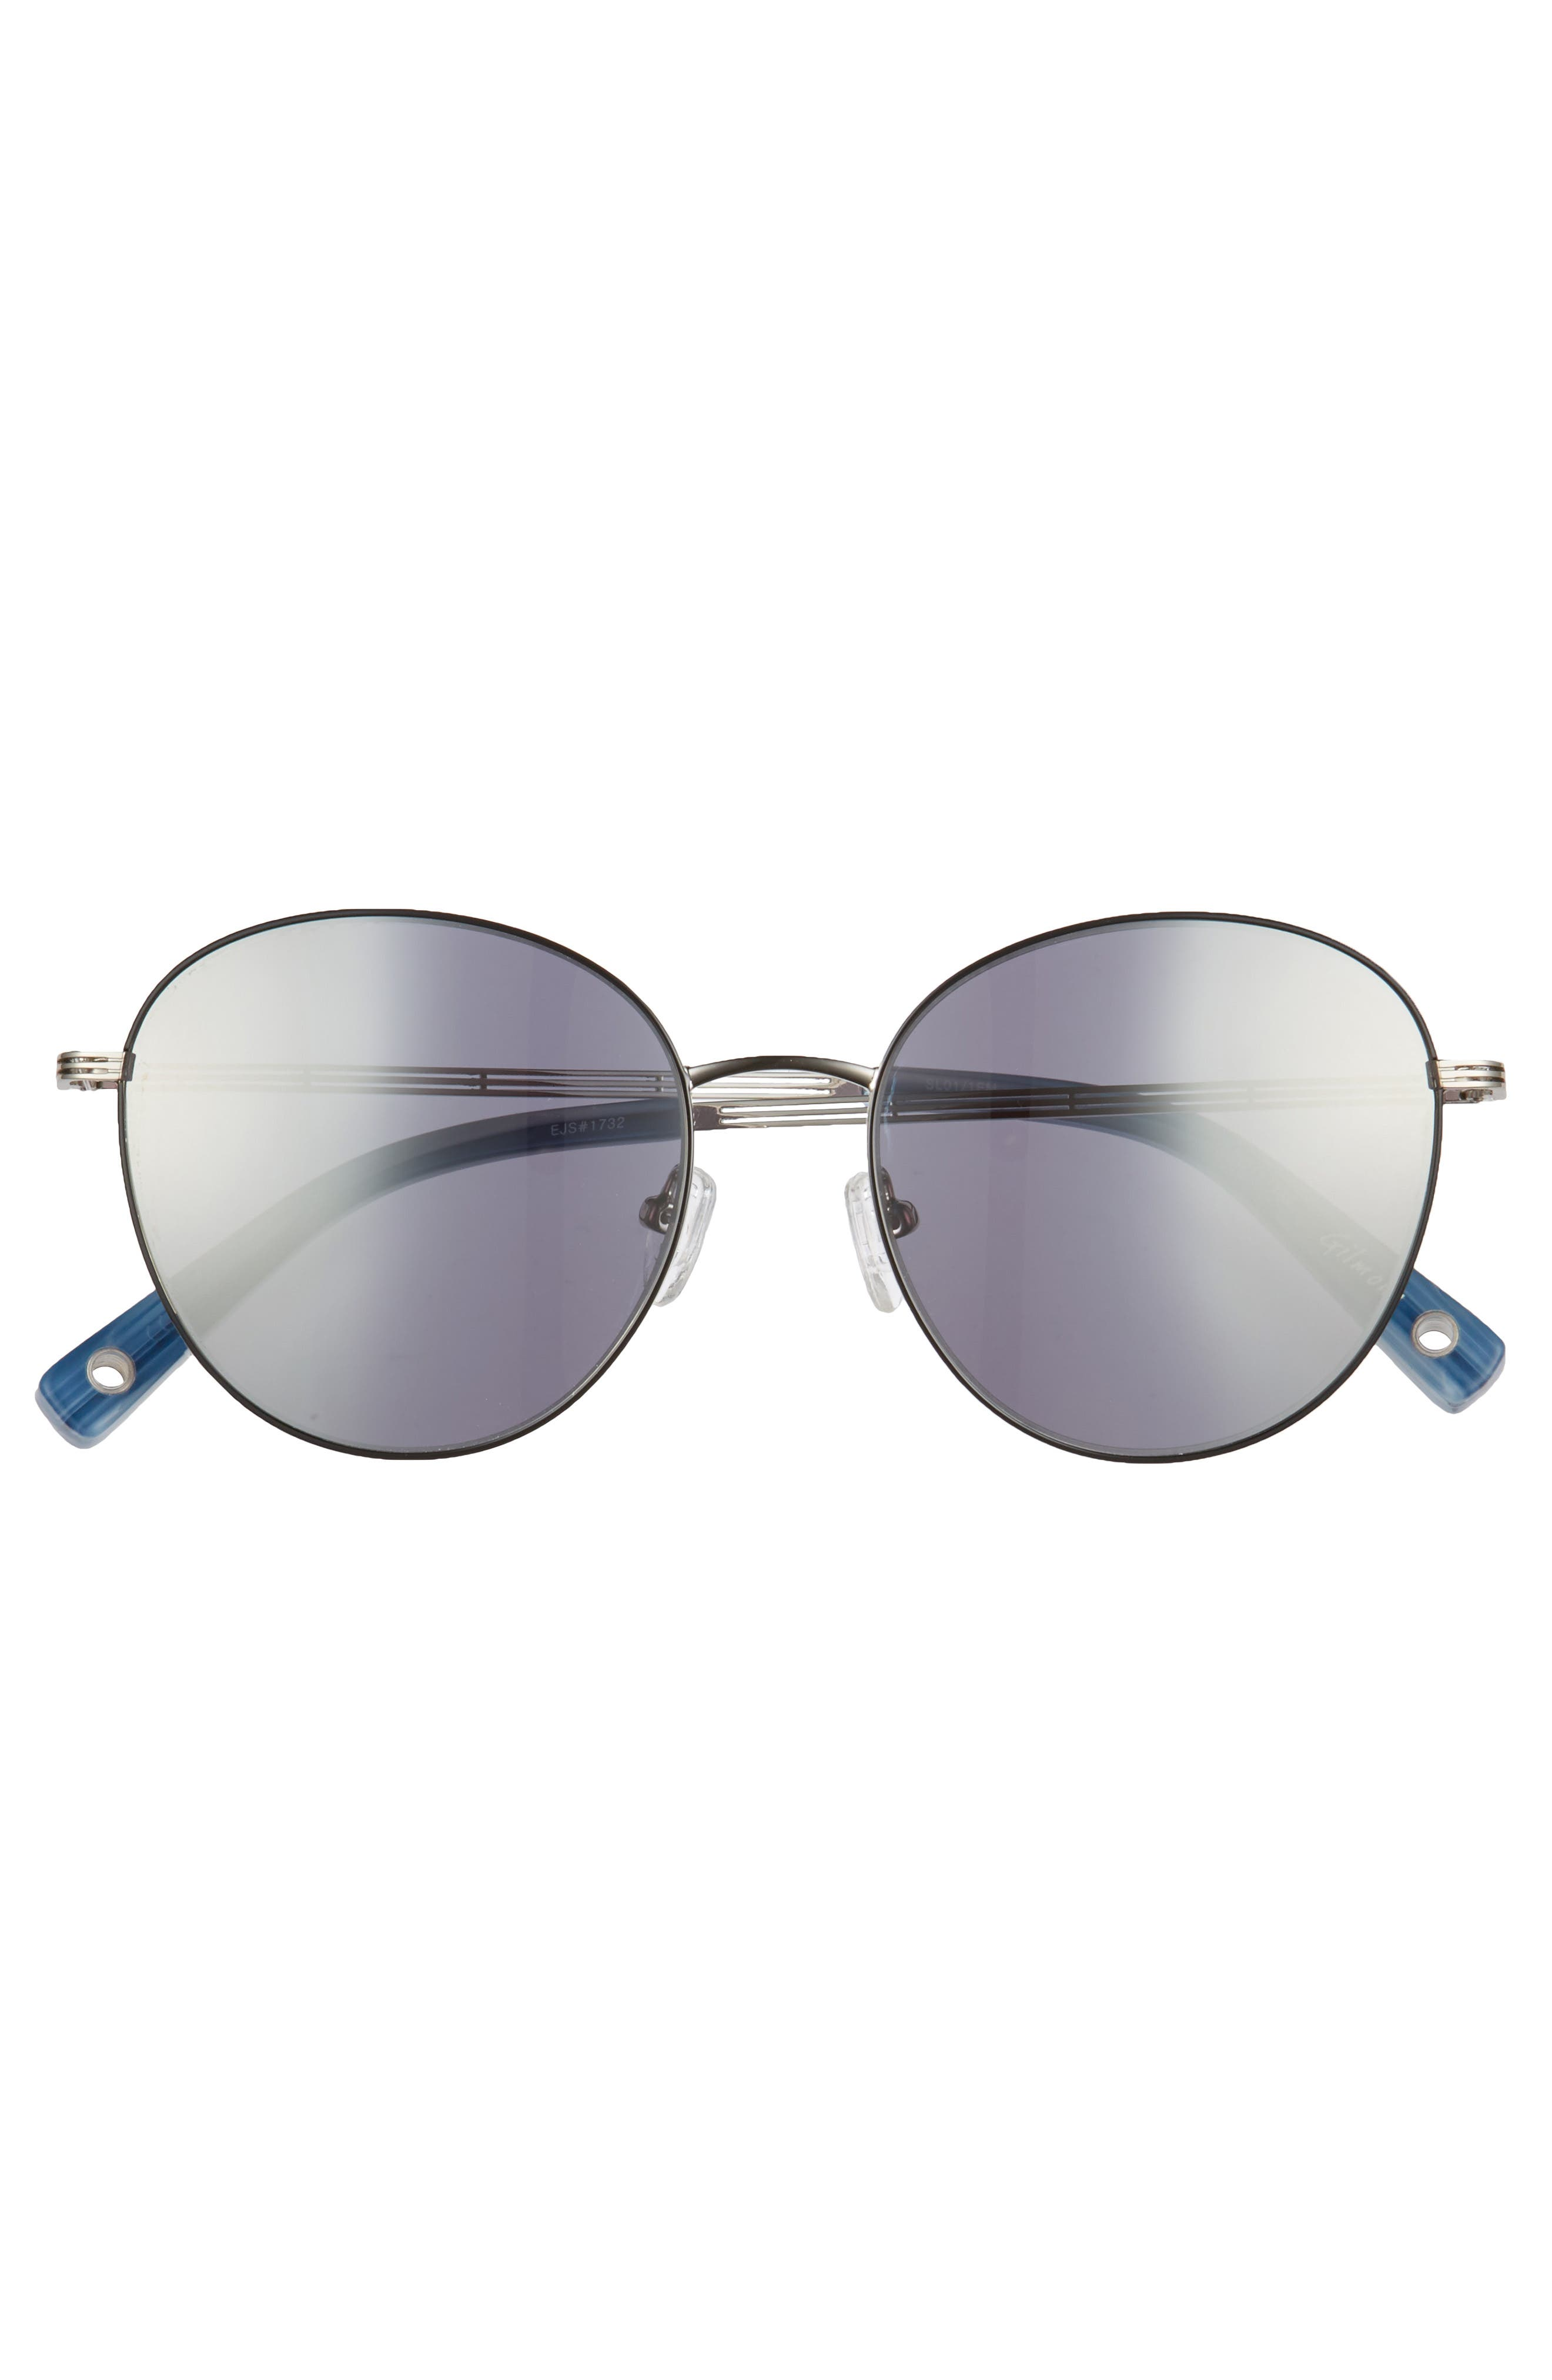 Gilmour 53mm Round Sunglasses & Beaded Chain,                             Alternate thumbnail 7, color,